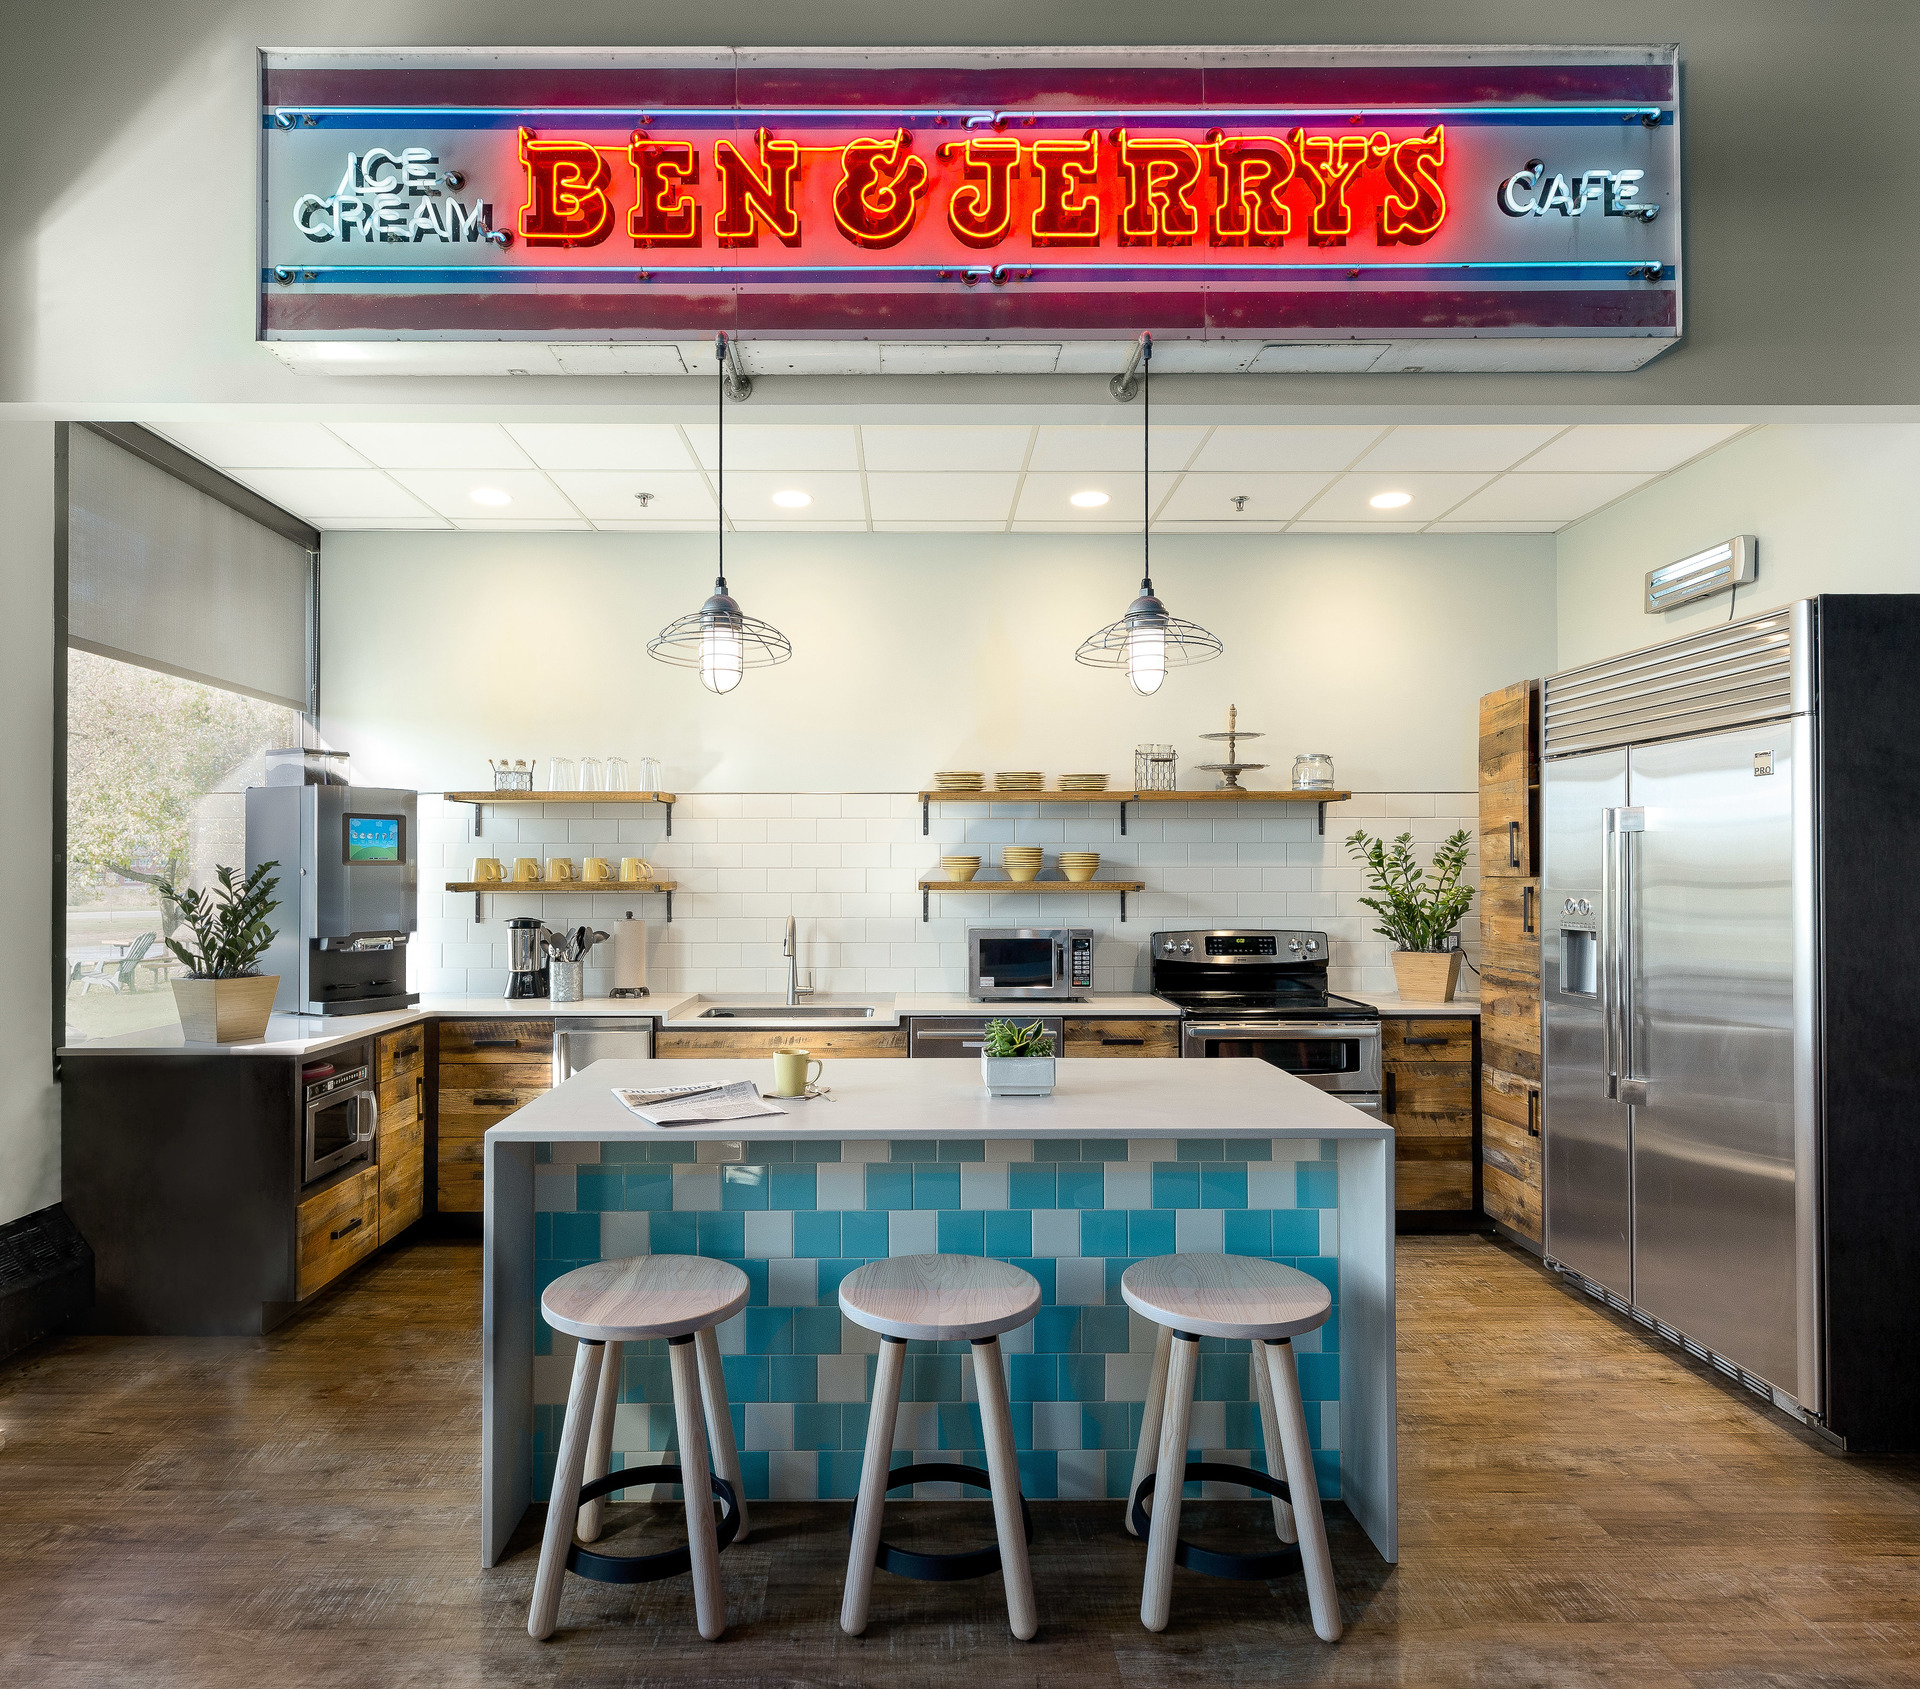 The design intent was to create a rustic industrial space that felt indicative of a beer garden. The team chose the Blue Collar Pendant light to accent the kitchen island.